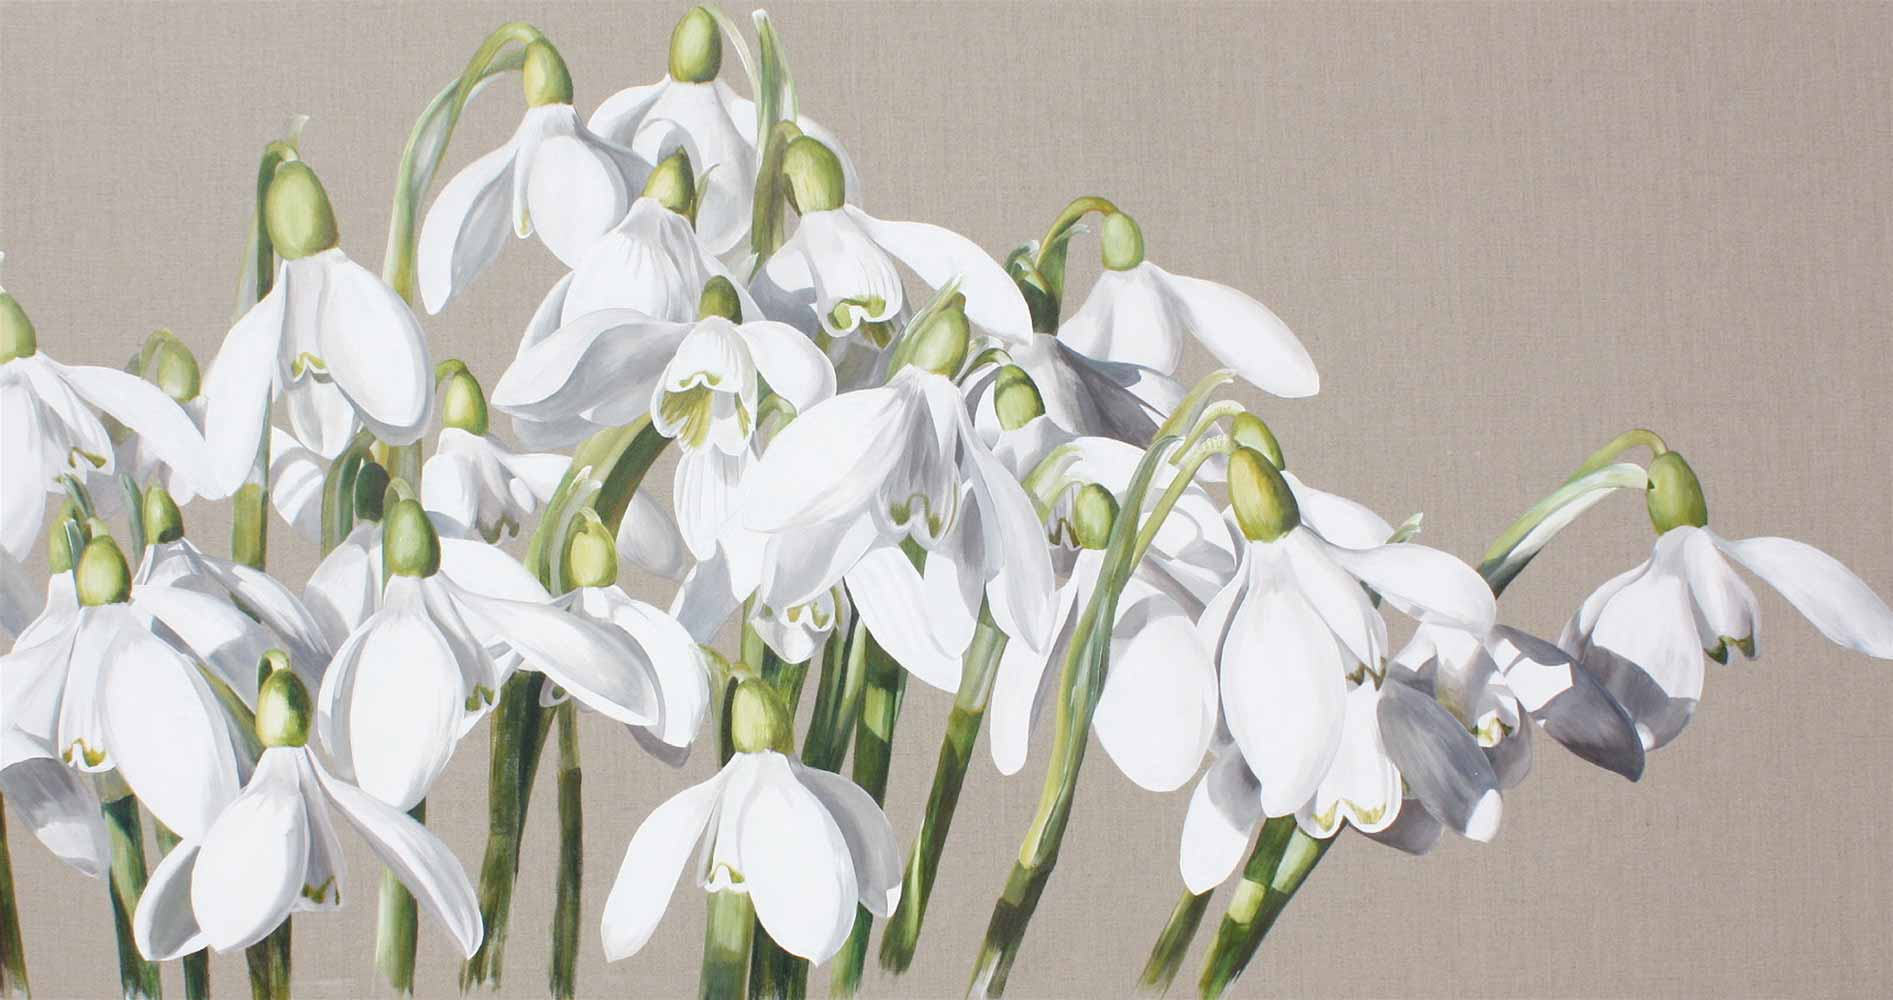 White snowdrops galanthus on linen background painting by UK floral artist Sarah Caswell